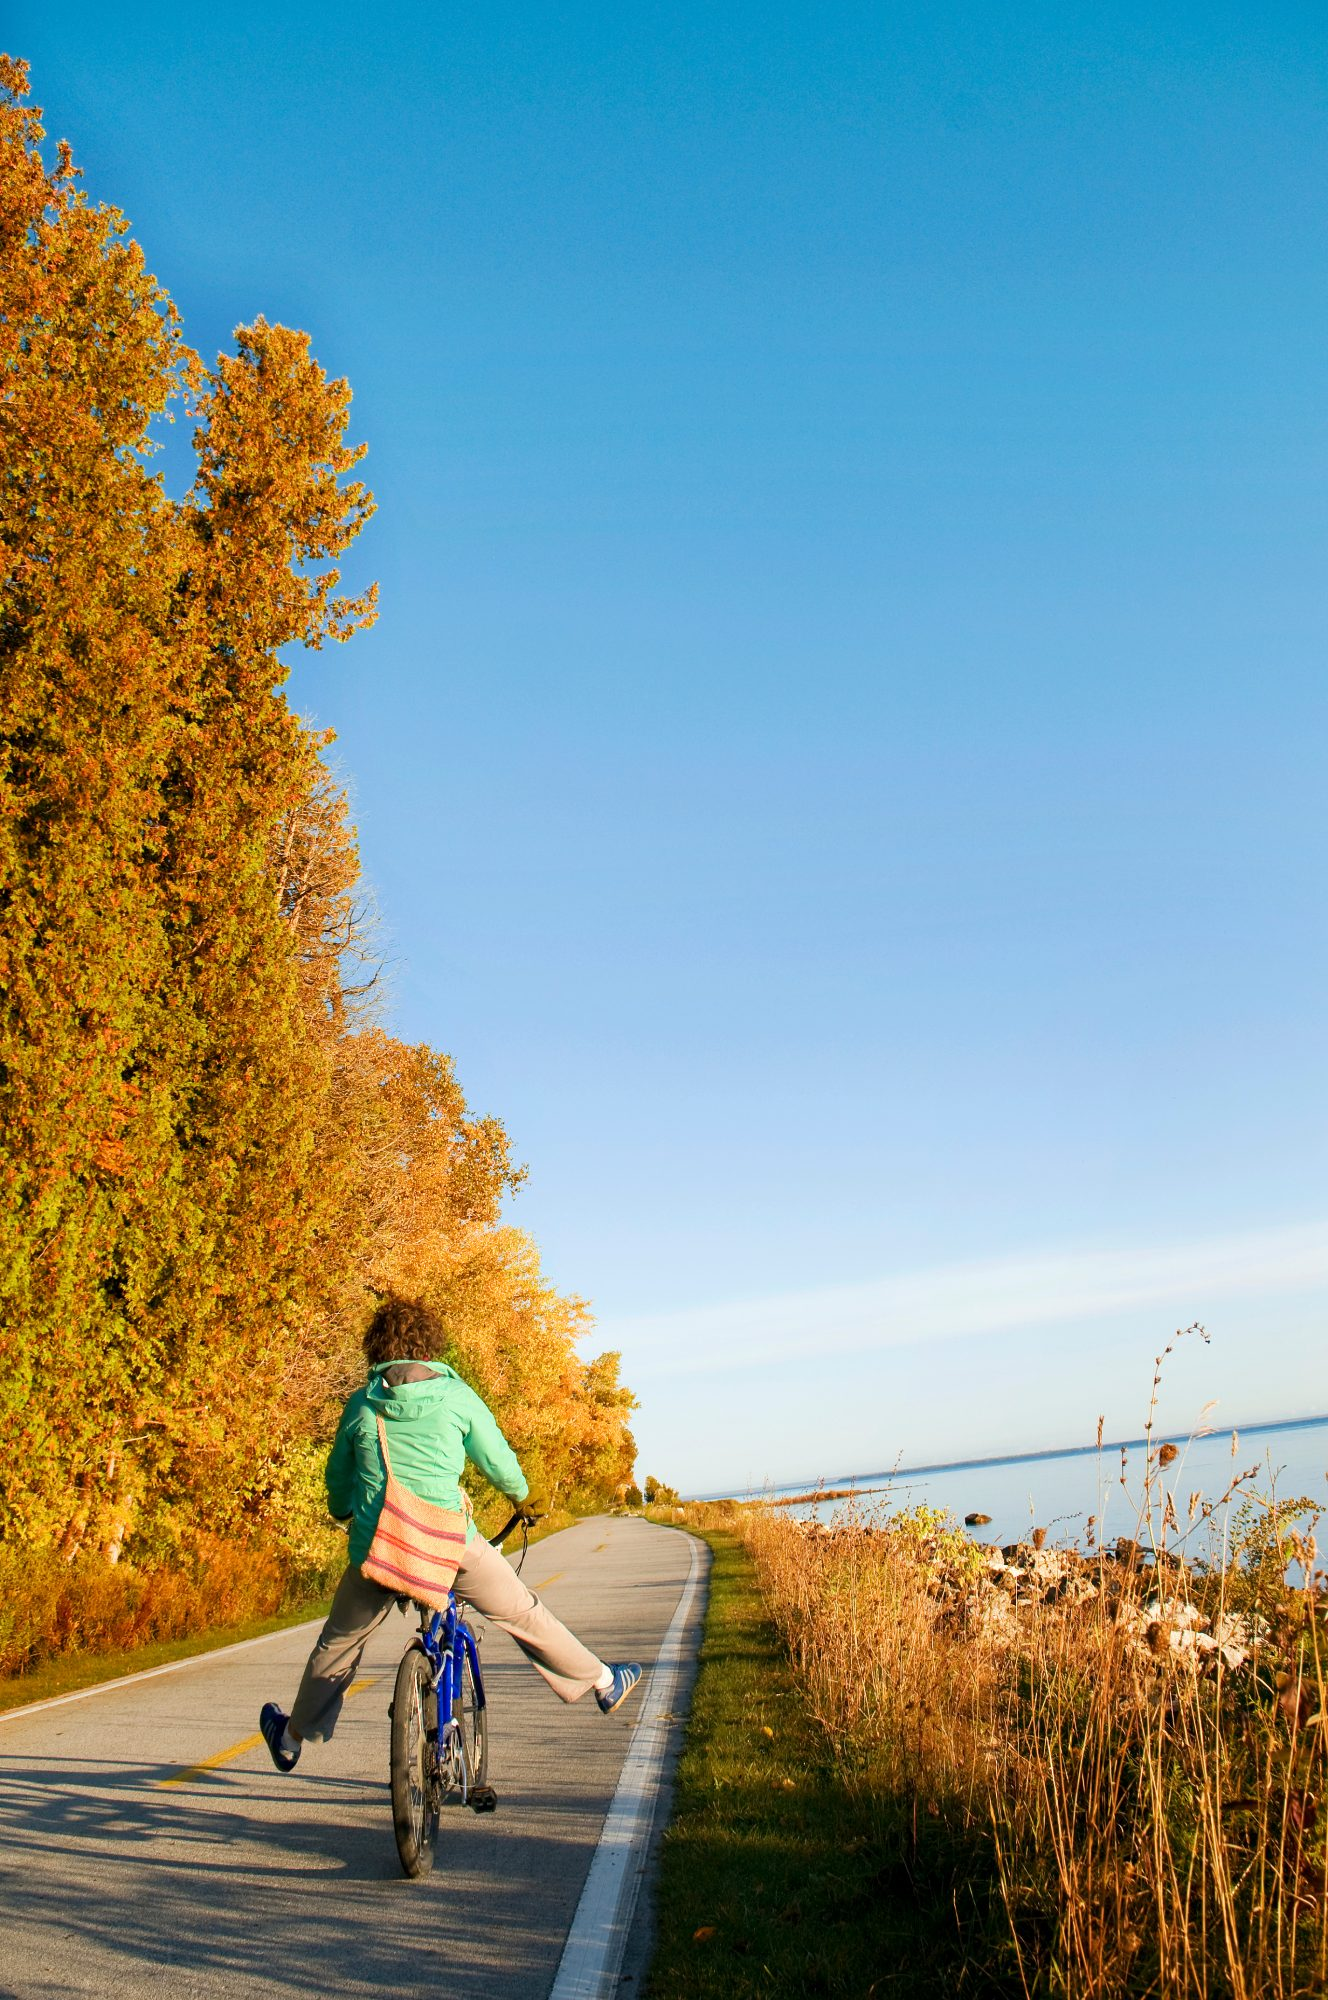 Cycling is the best way to explore auto-free Mackinac Island. Come September, riders can pedal downtown without brushing another tourist's tires and admire the softball-size dahlias and drifts of black-eyed Susans at the Grand Hotel. An 8-mile paved trail circles Mackinac. Inland, 140 miles of carriage roads, bike trails and footpaths knit through a hilly and wooded landscape, past limestone outcrops. Scott's Road and the Tranquil Bluff Trail trace the eastern shore, where red, brown and golden leaves drift down from a canopy of red oak, beech and maple.